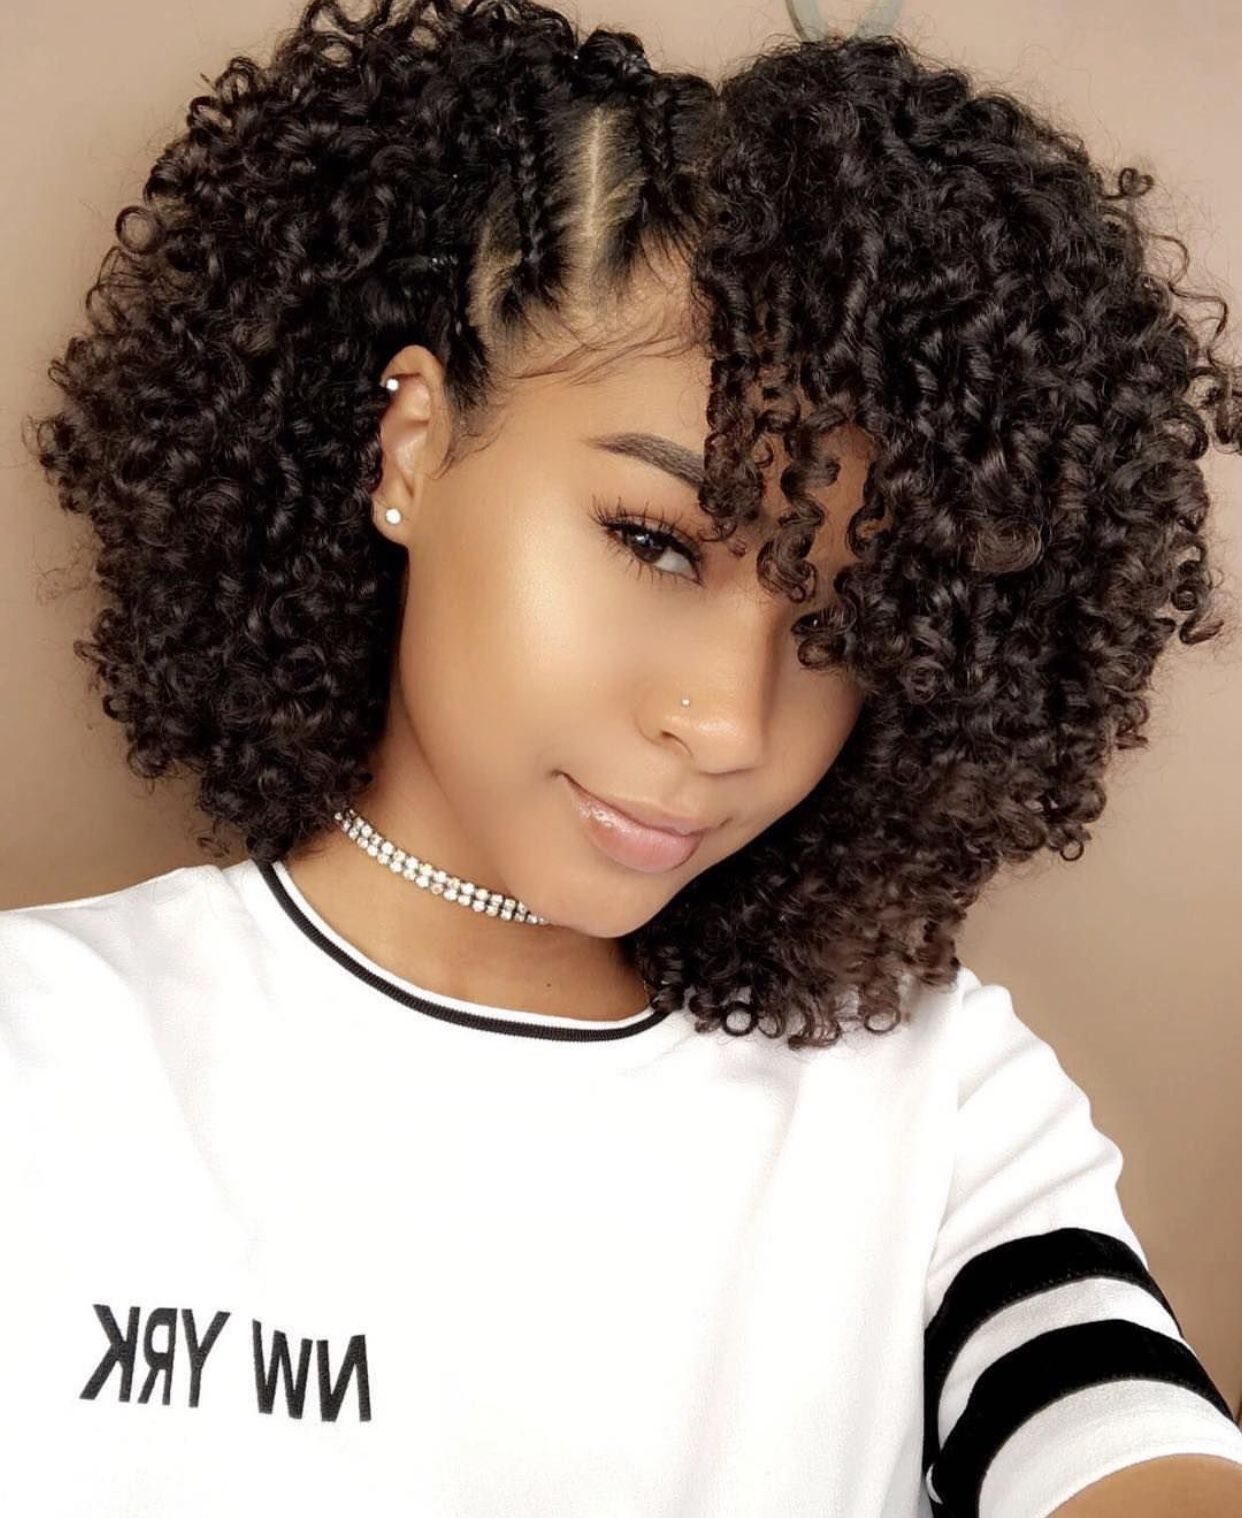 Latest Trend Hairstyles For 2020 2021 Hairstylefun Com Natural Hair Styles Black Natural Hairstyles Hair Styles